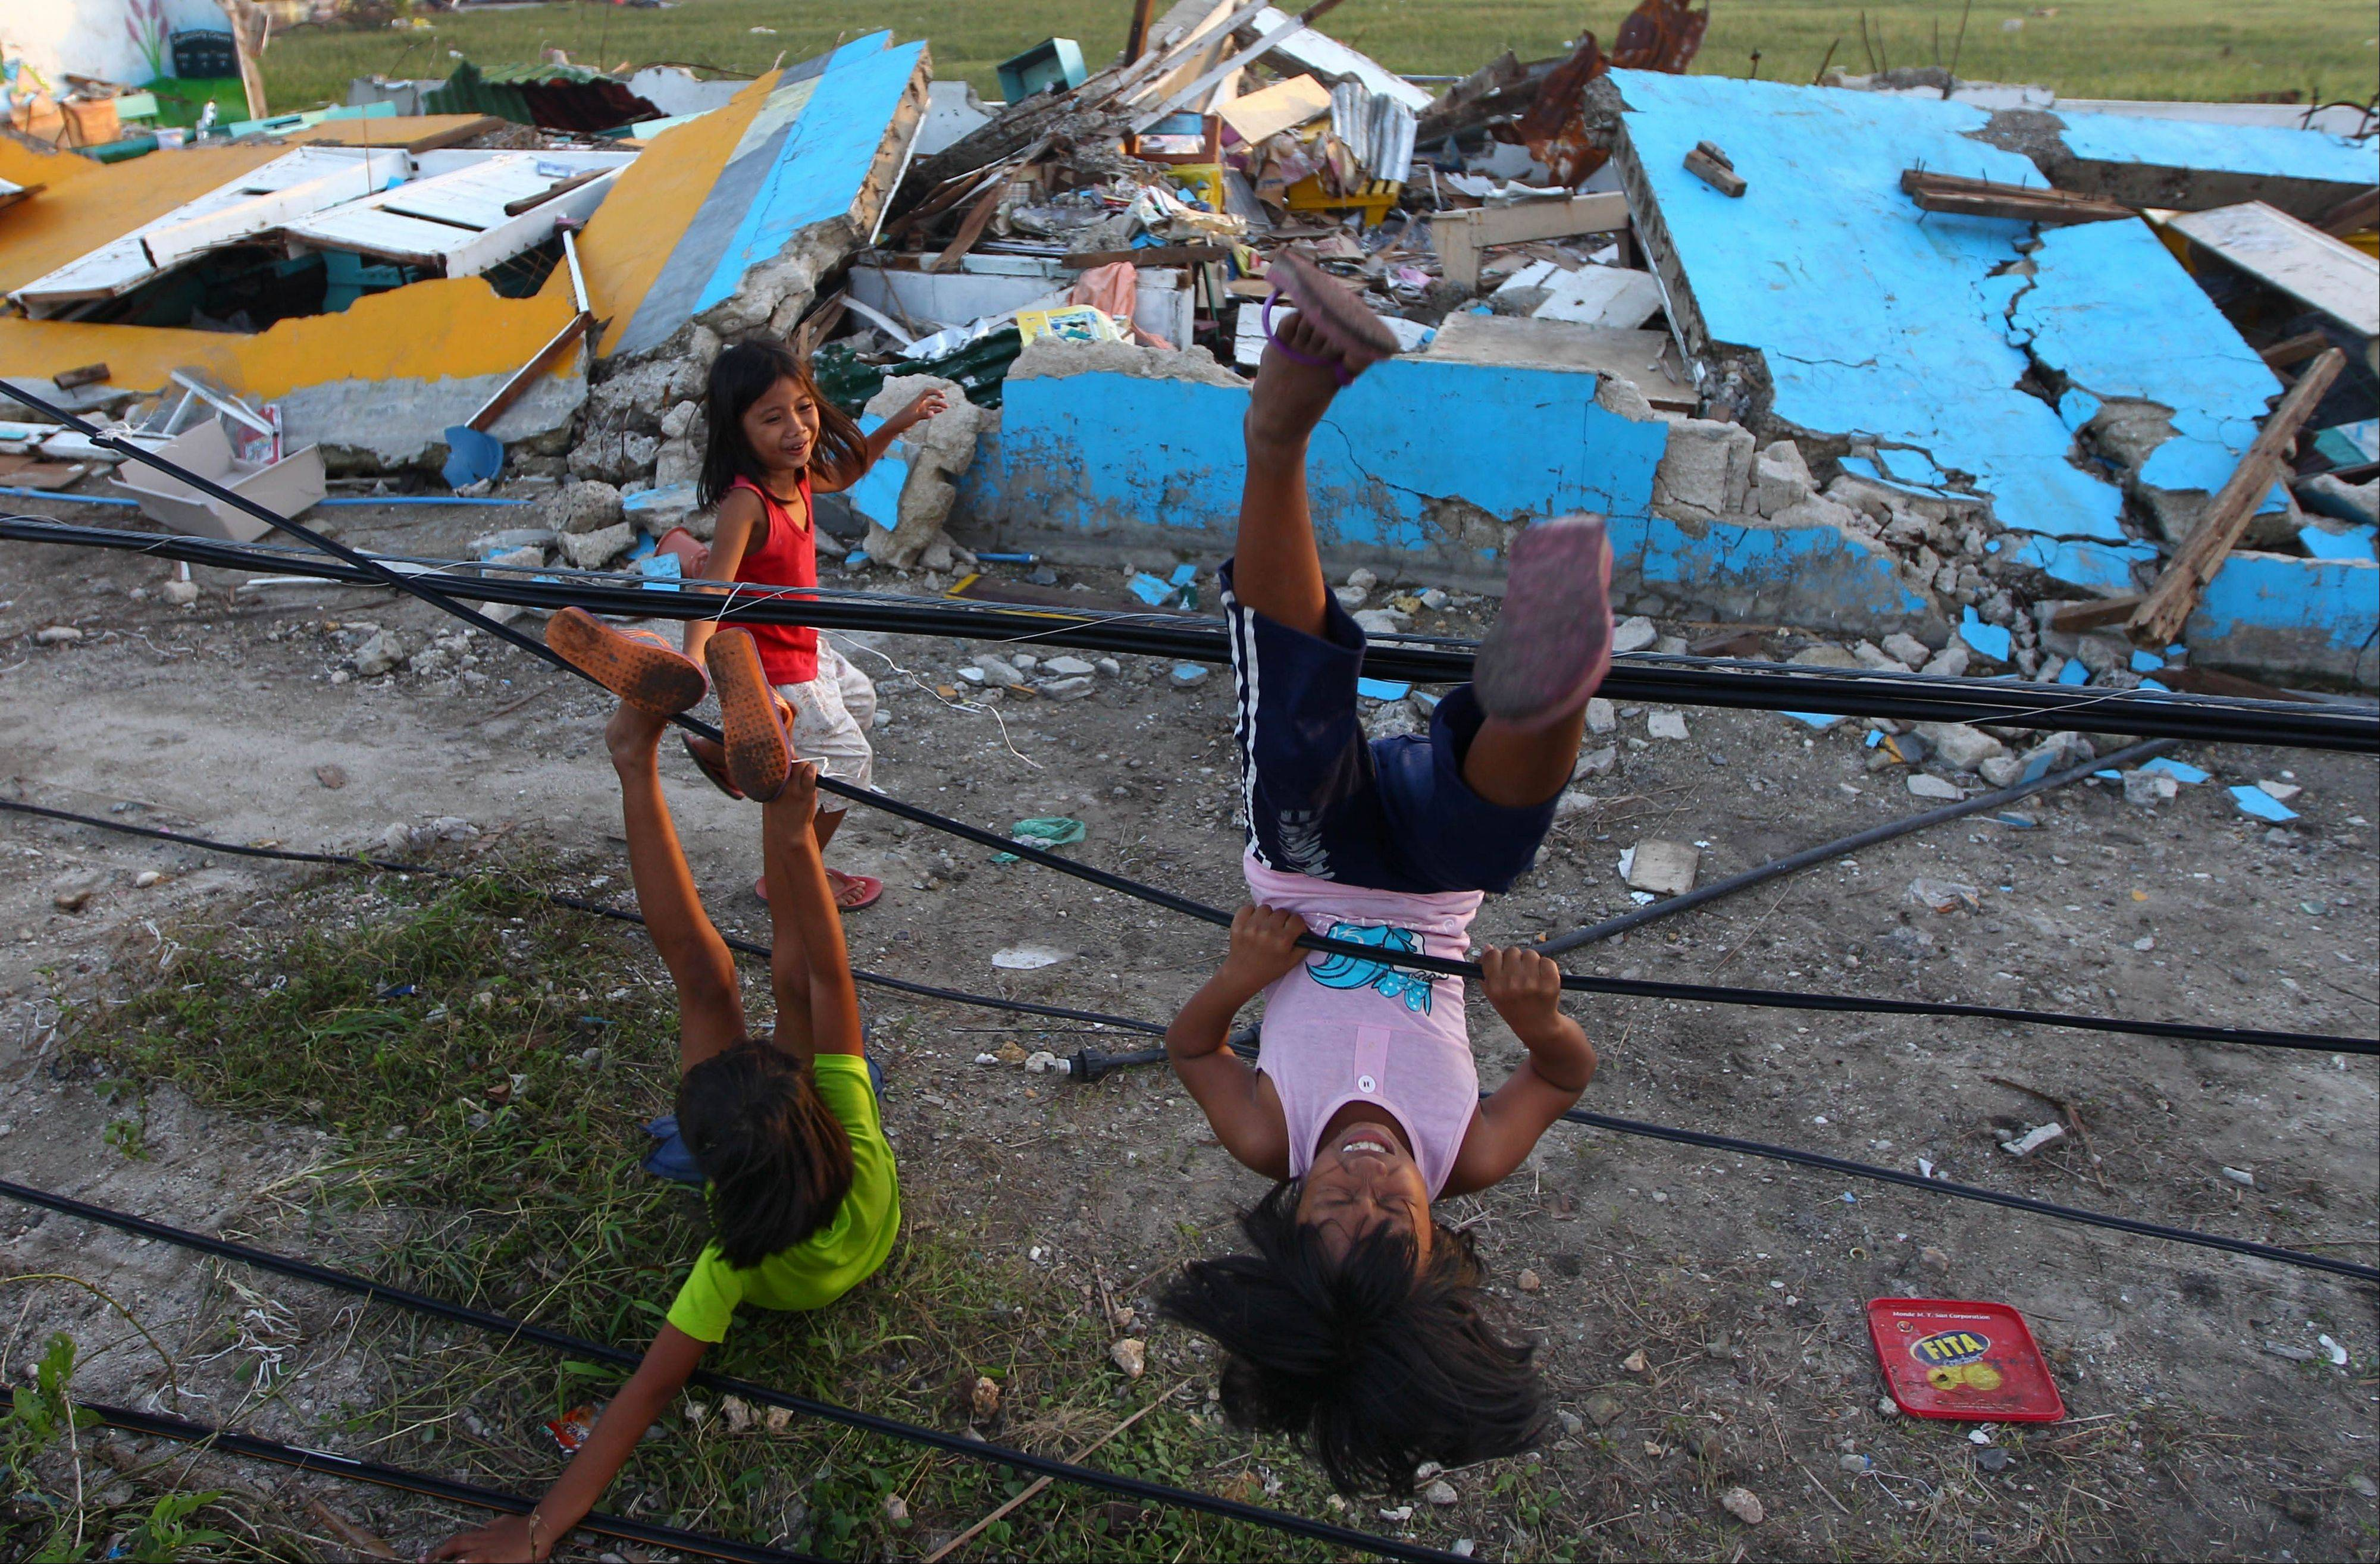 Young survivors of Typhoon Haiyan play with fallen power lines near a damaged school in Guiuan, Philippines, Thursday, Nov. 14, 2013. Typhoon Haiyan, one of the most powerful storms on record, hit the country's eastern seaboard on Friday, destroying tens of thousands of buildings and displacing at least a half-million people.